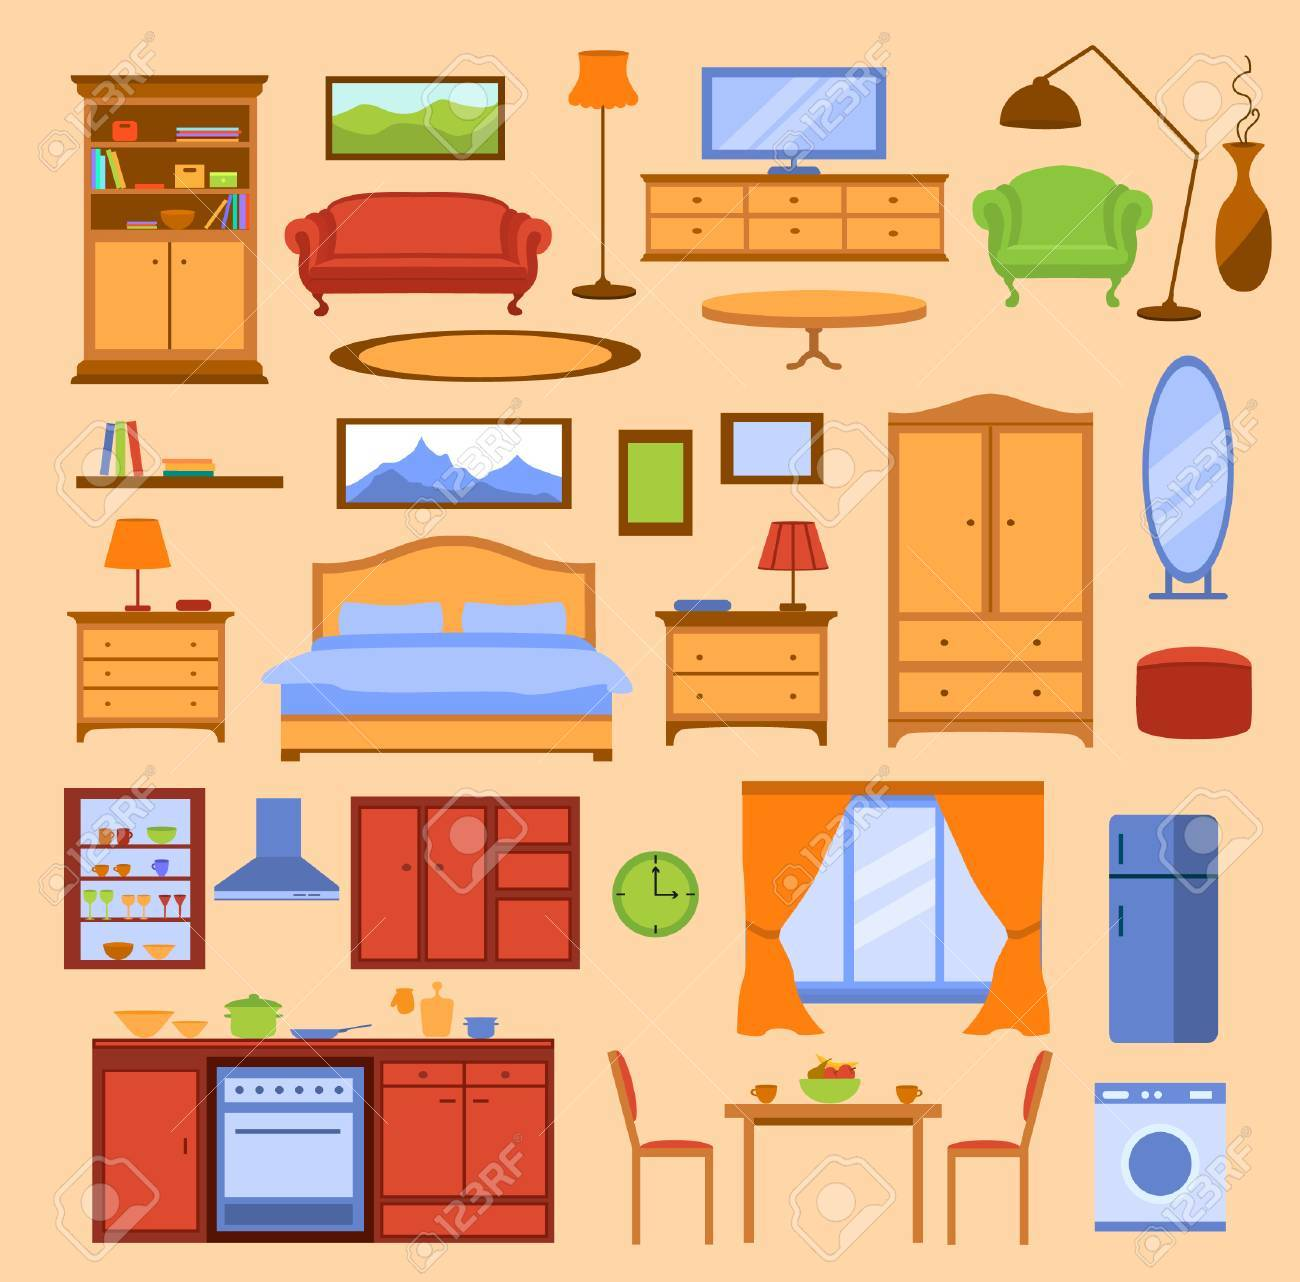 Colorful Furniture Items Set Furniture Collection In Color Royalty Free Cliparts Vectors And Stock Illustration Image 58516175